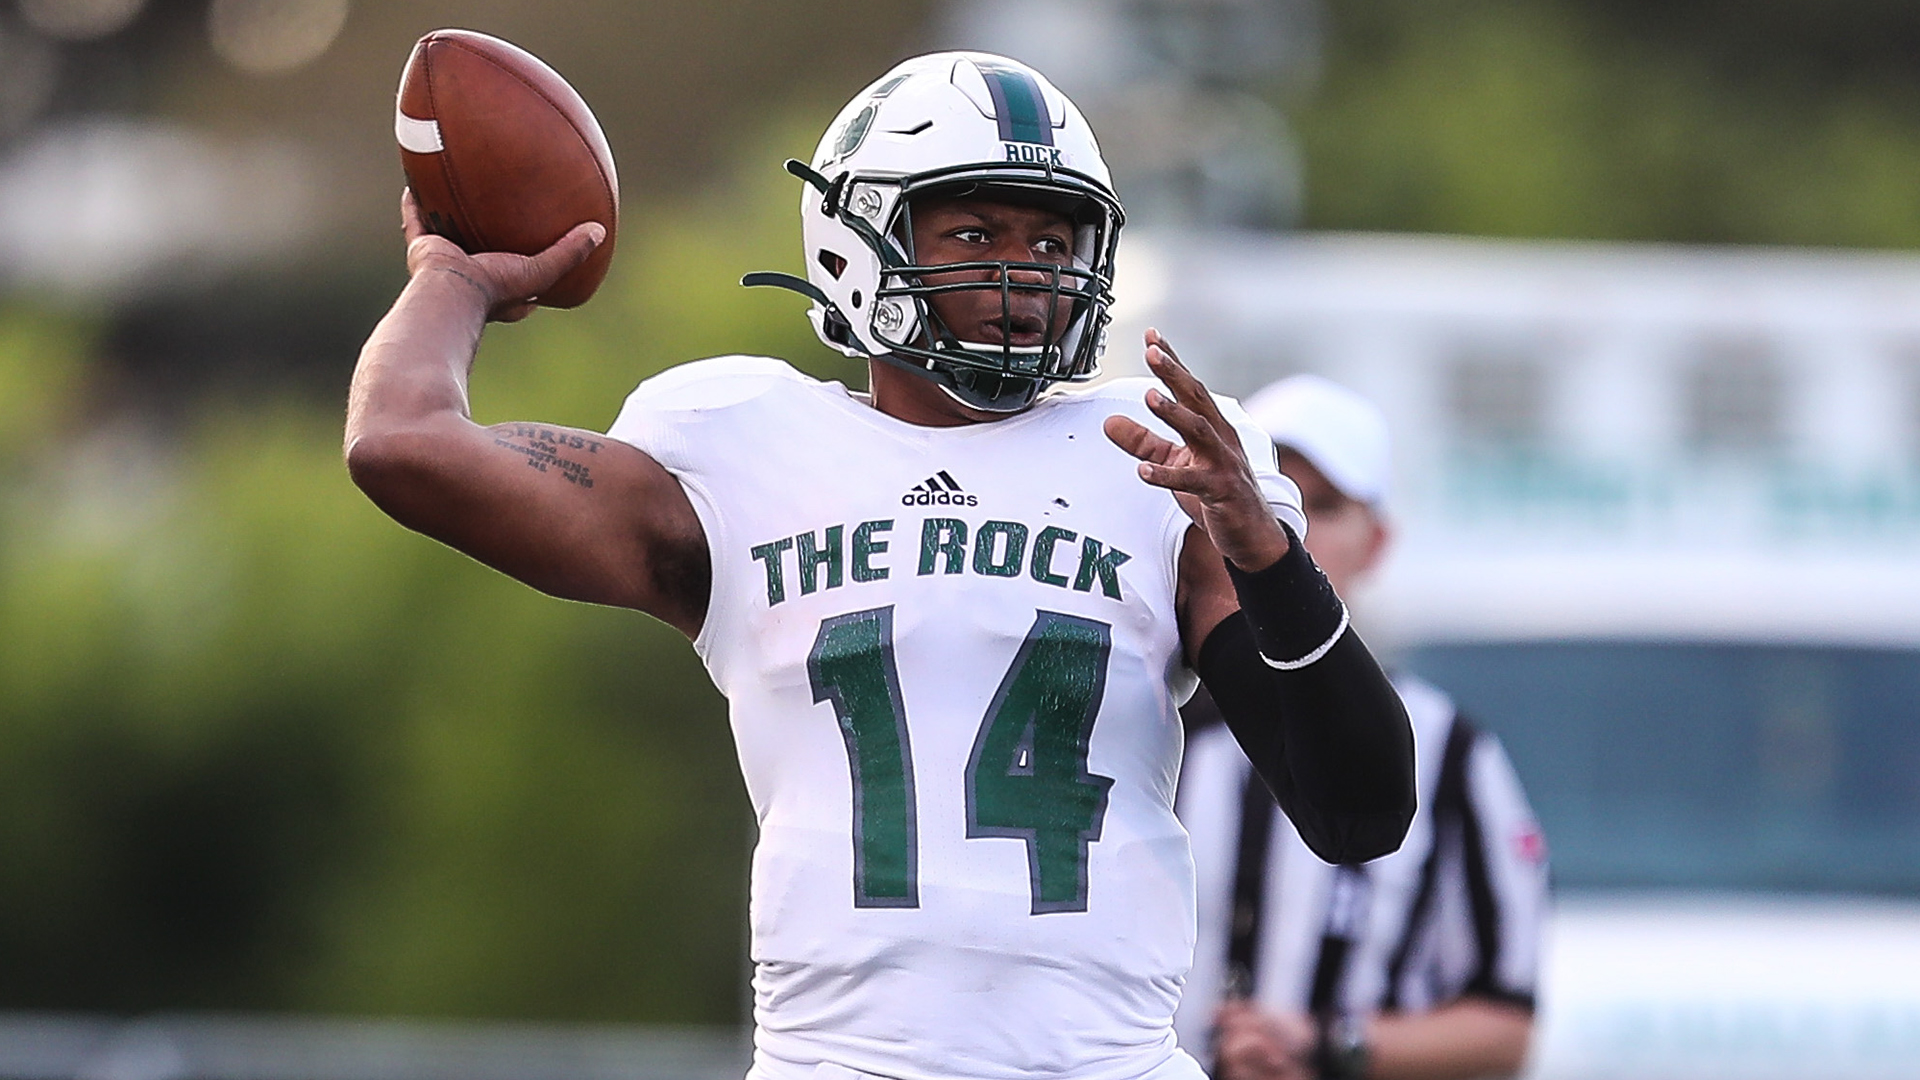 Football - Slippery Rock University Athletics